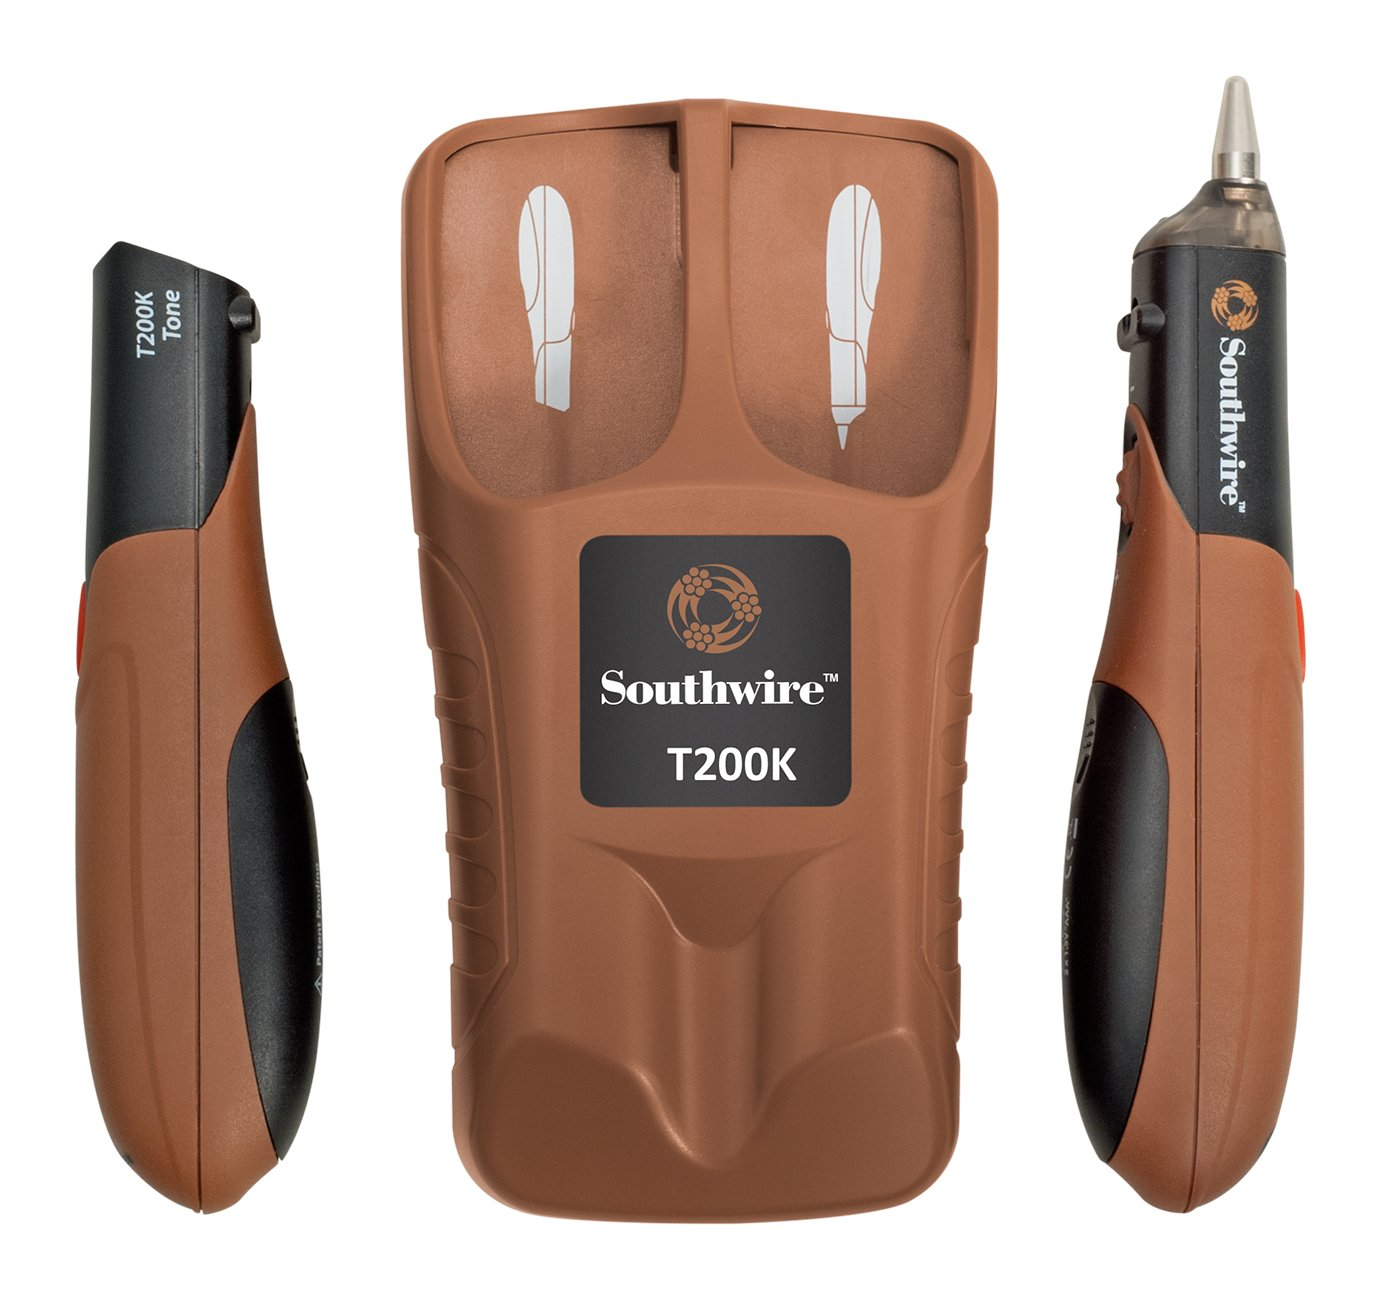 Southwire Tools & Equipment T200K Multipurpose Tone & Probe Tracing Kit by Southwire